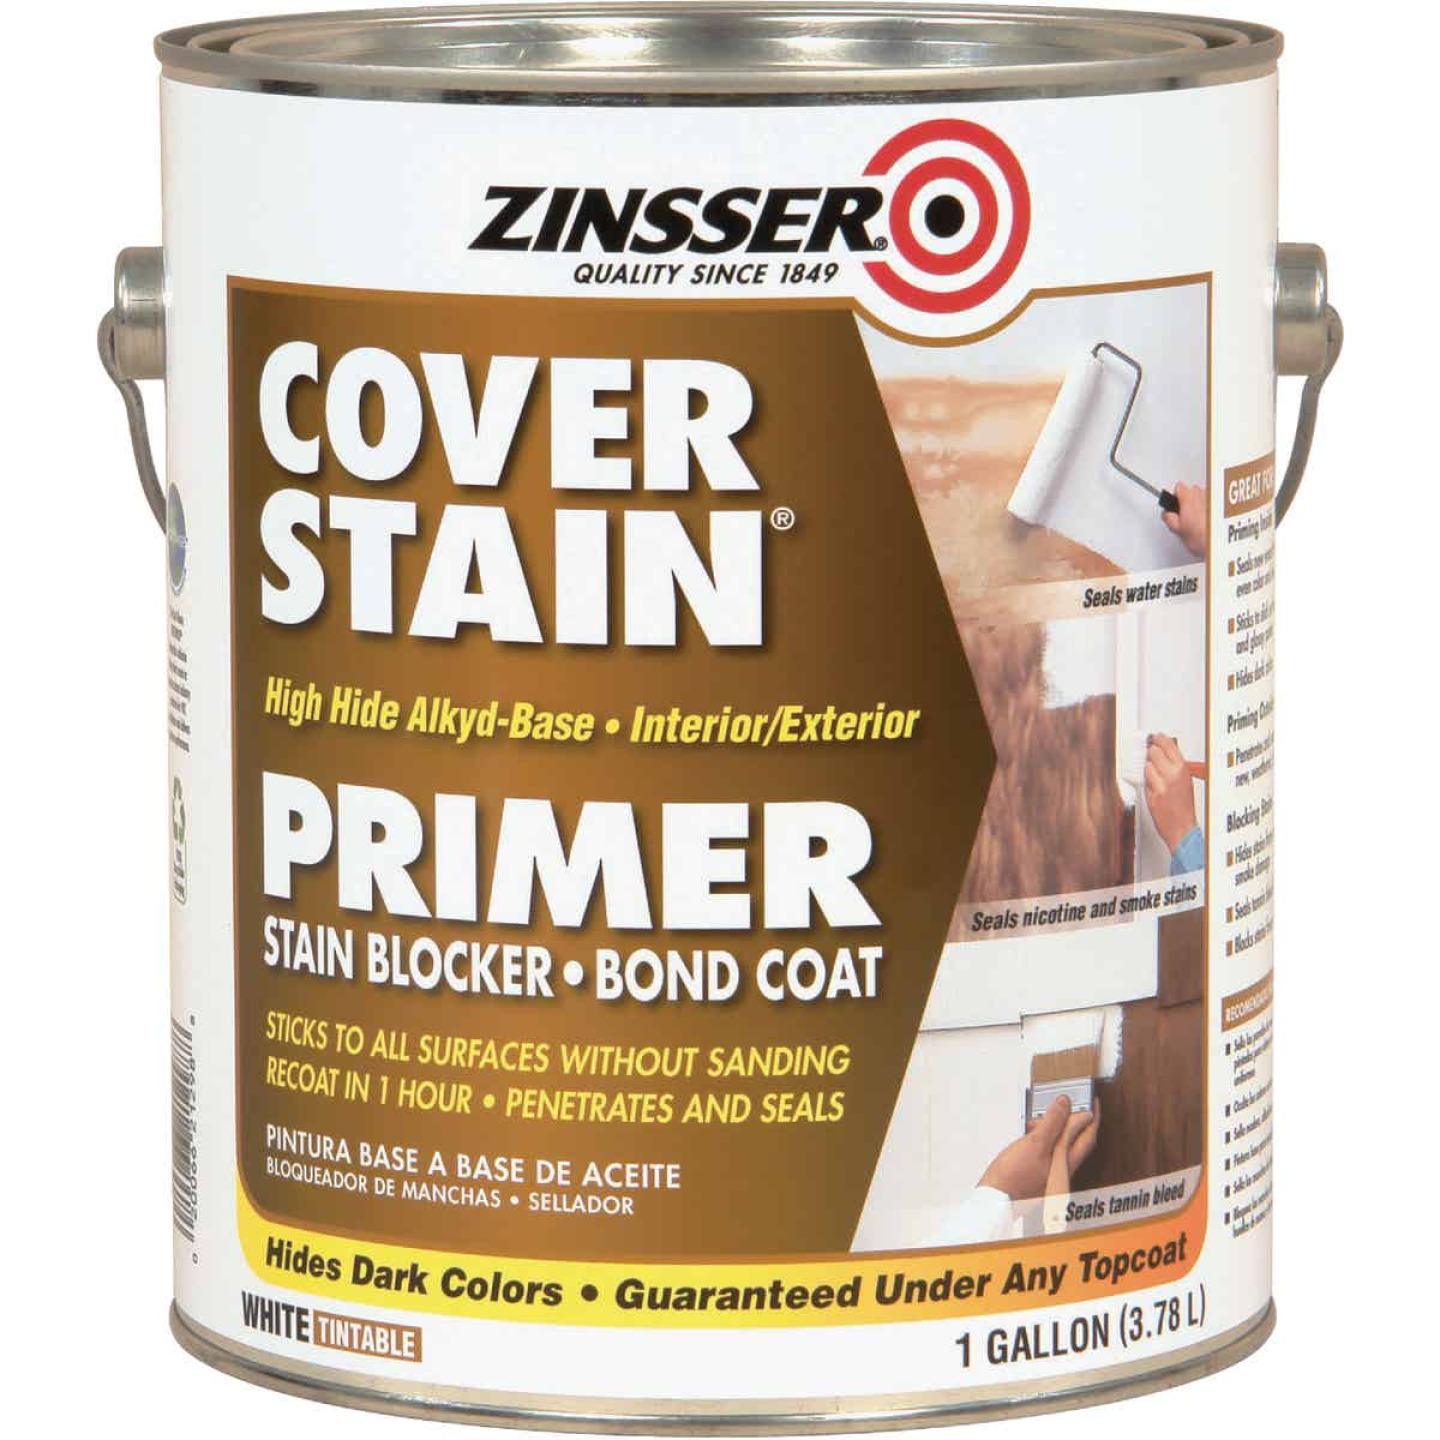 Zinsser Cover-Stain Low VOC High Hide Alkyd-Base Interior/Exterior Stain Blocker Primer, White, 1 Gal. Image 1